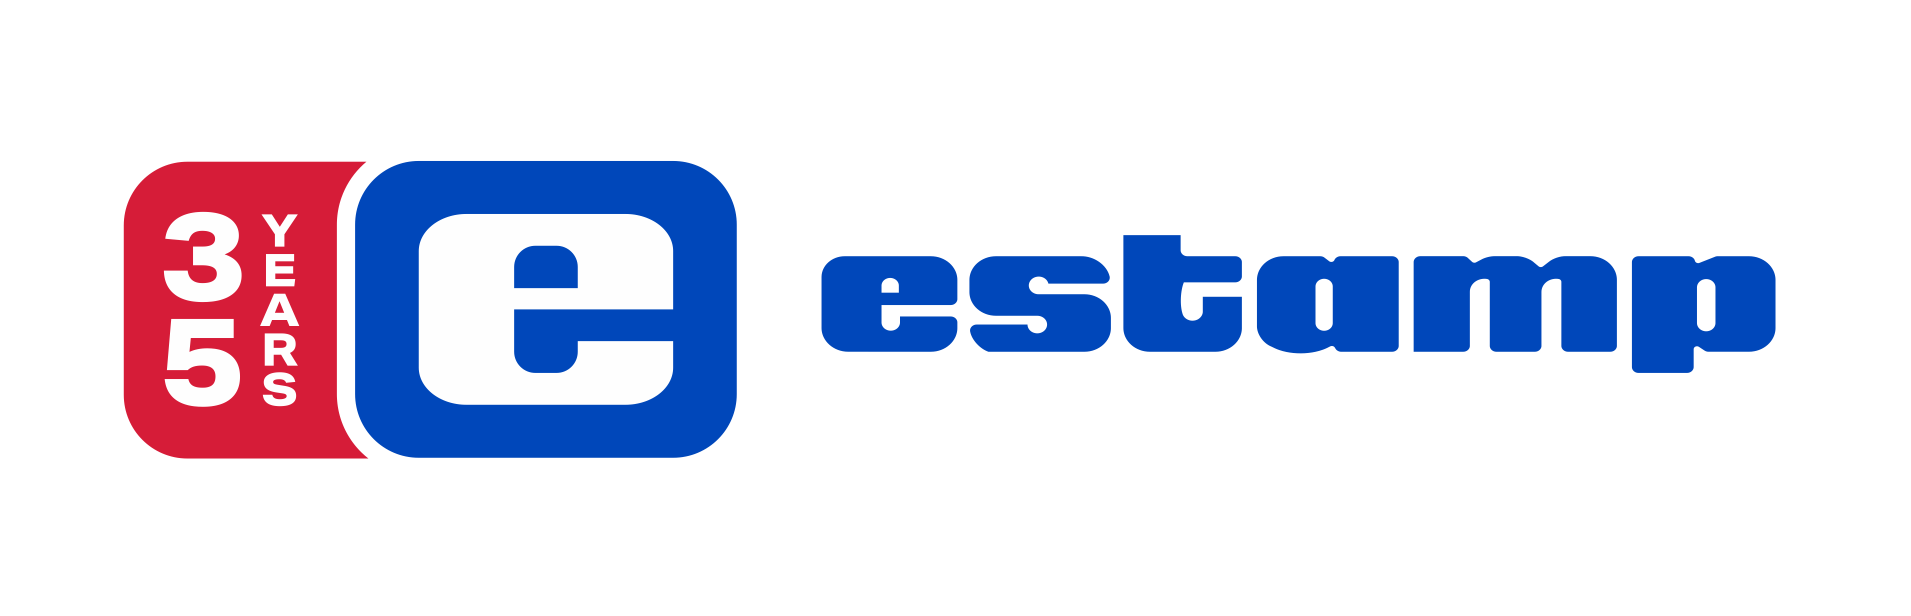 estamp-35-years